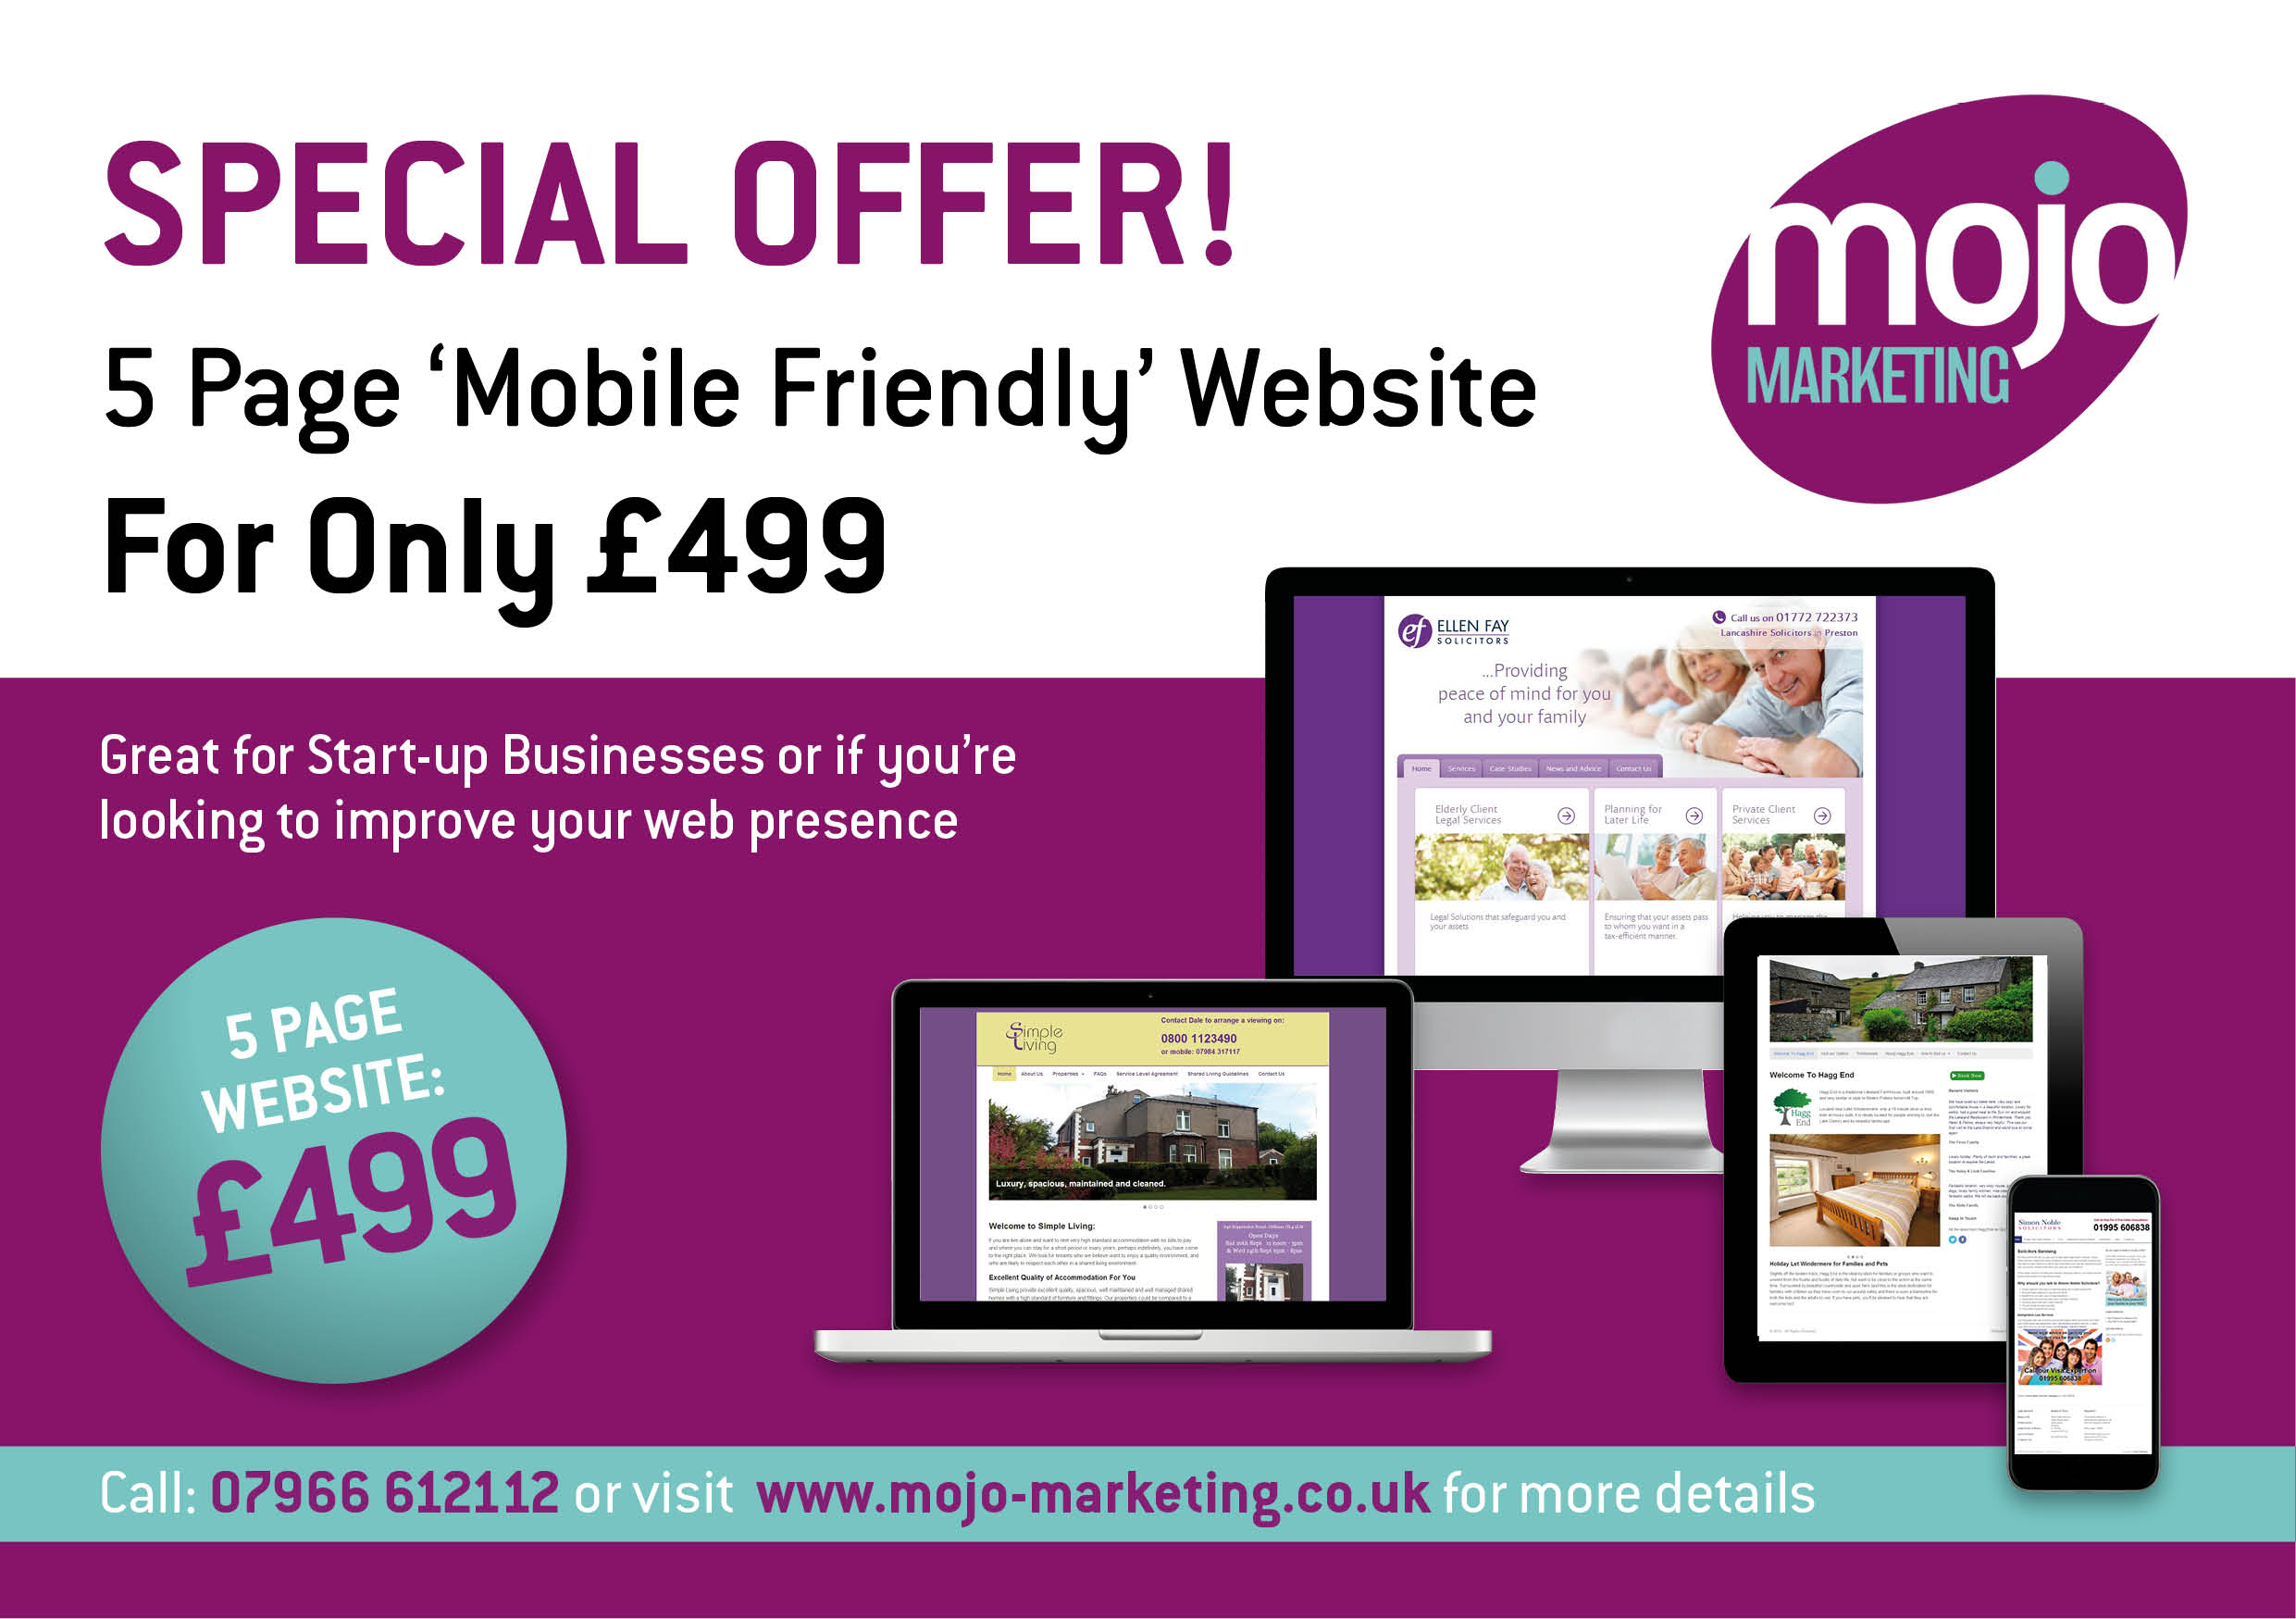 Learn more about our website offer